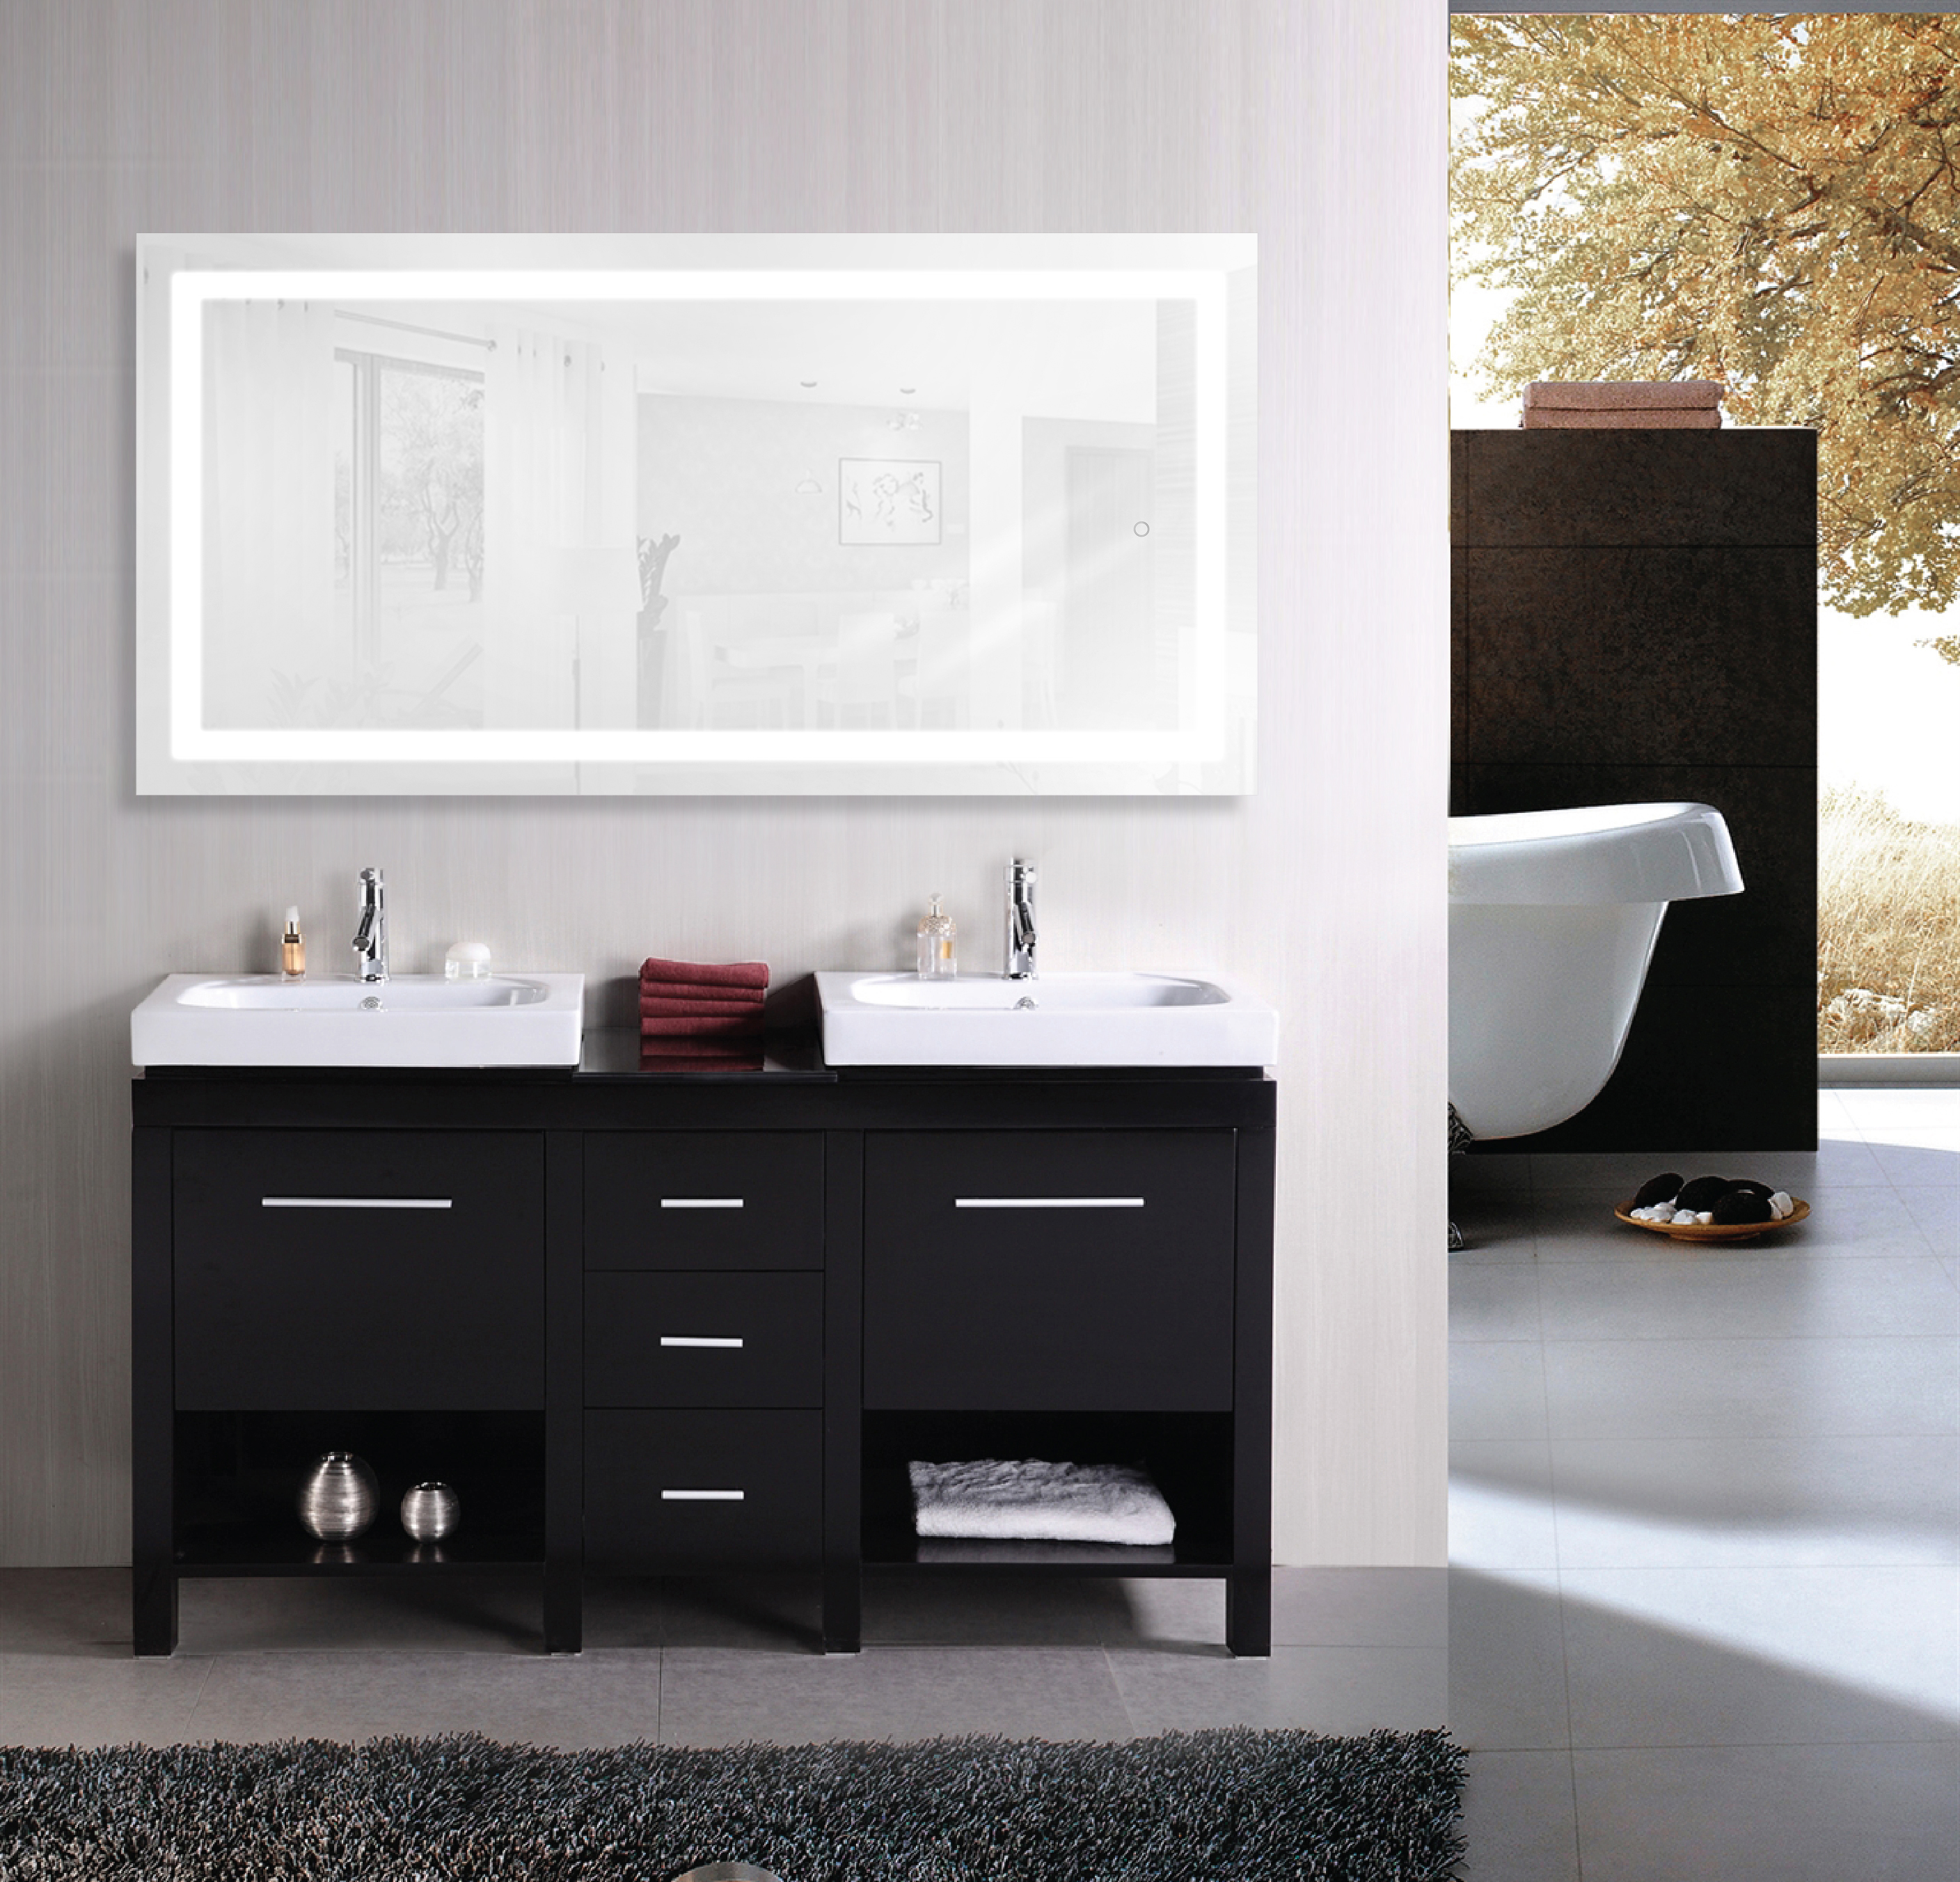 This Lighted bathroom mirror is a true Icon of sleek aesthetic styling and  sophistication. The mirror itself is of the highest quality silver backed  glass ...